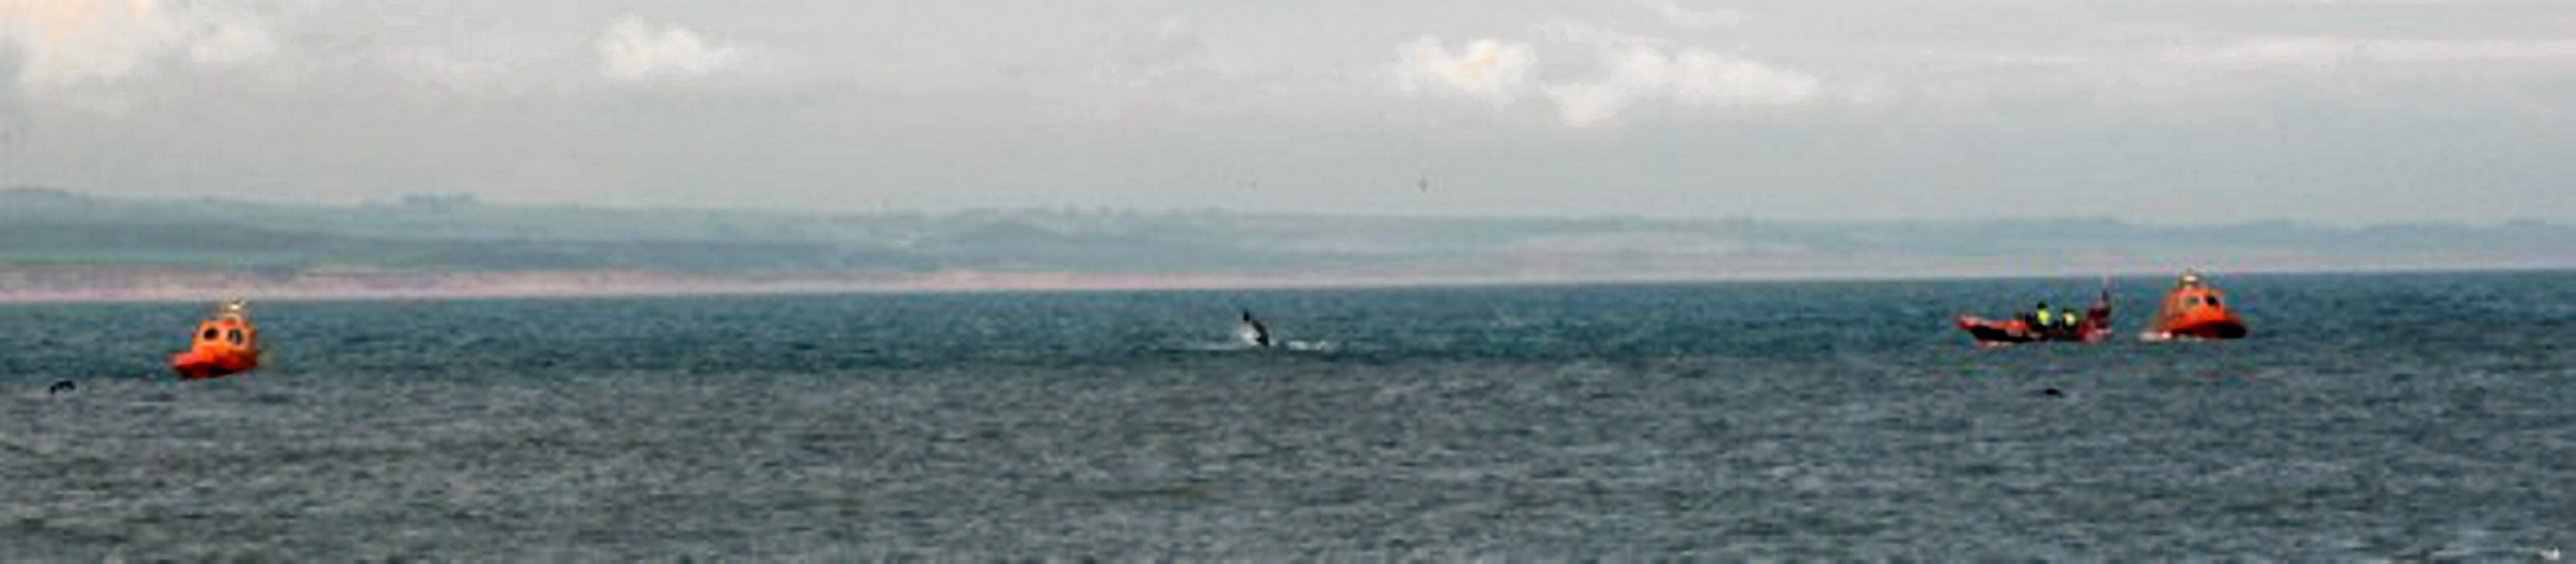 The alert comes as Aberdeen-based North Star Shipping denied claims its vessels were spotted harassing dolphins